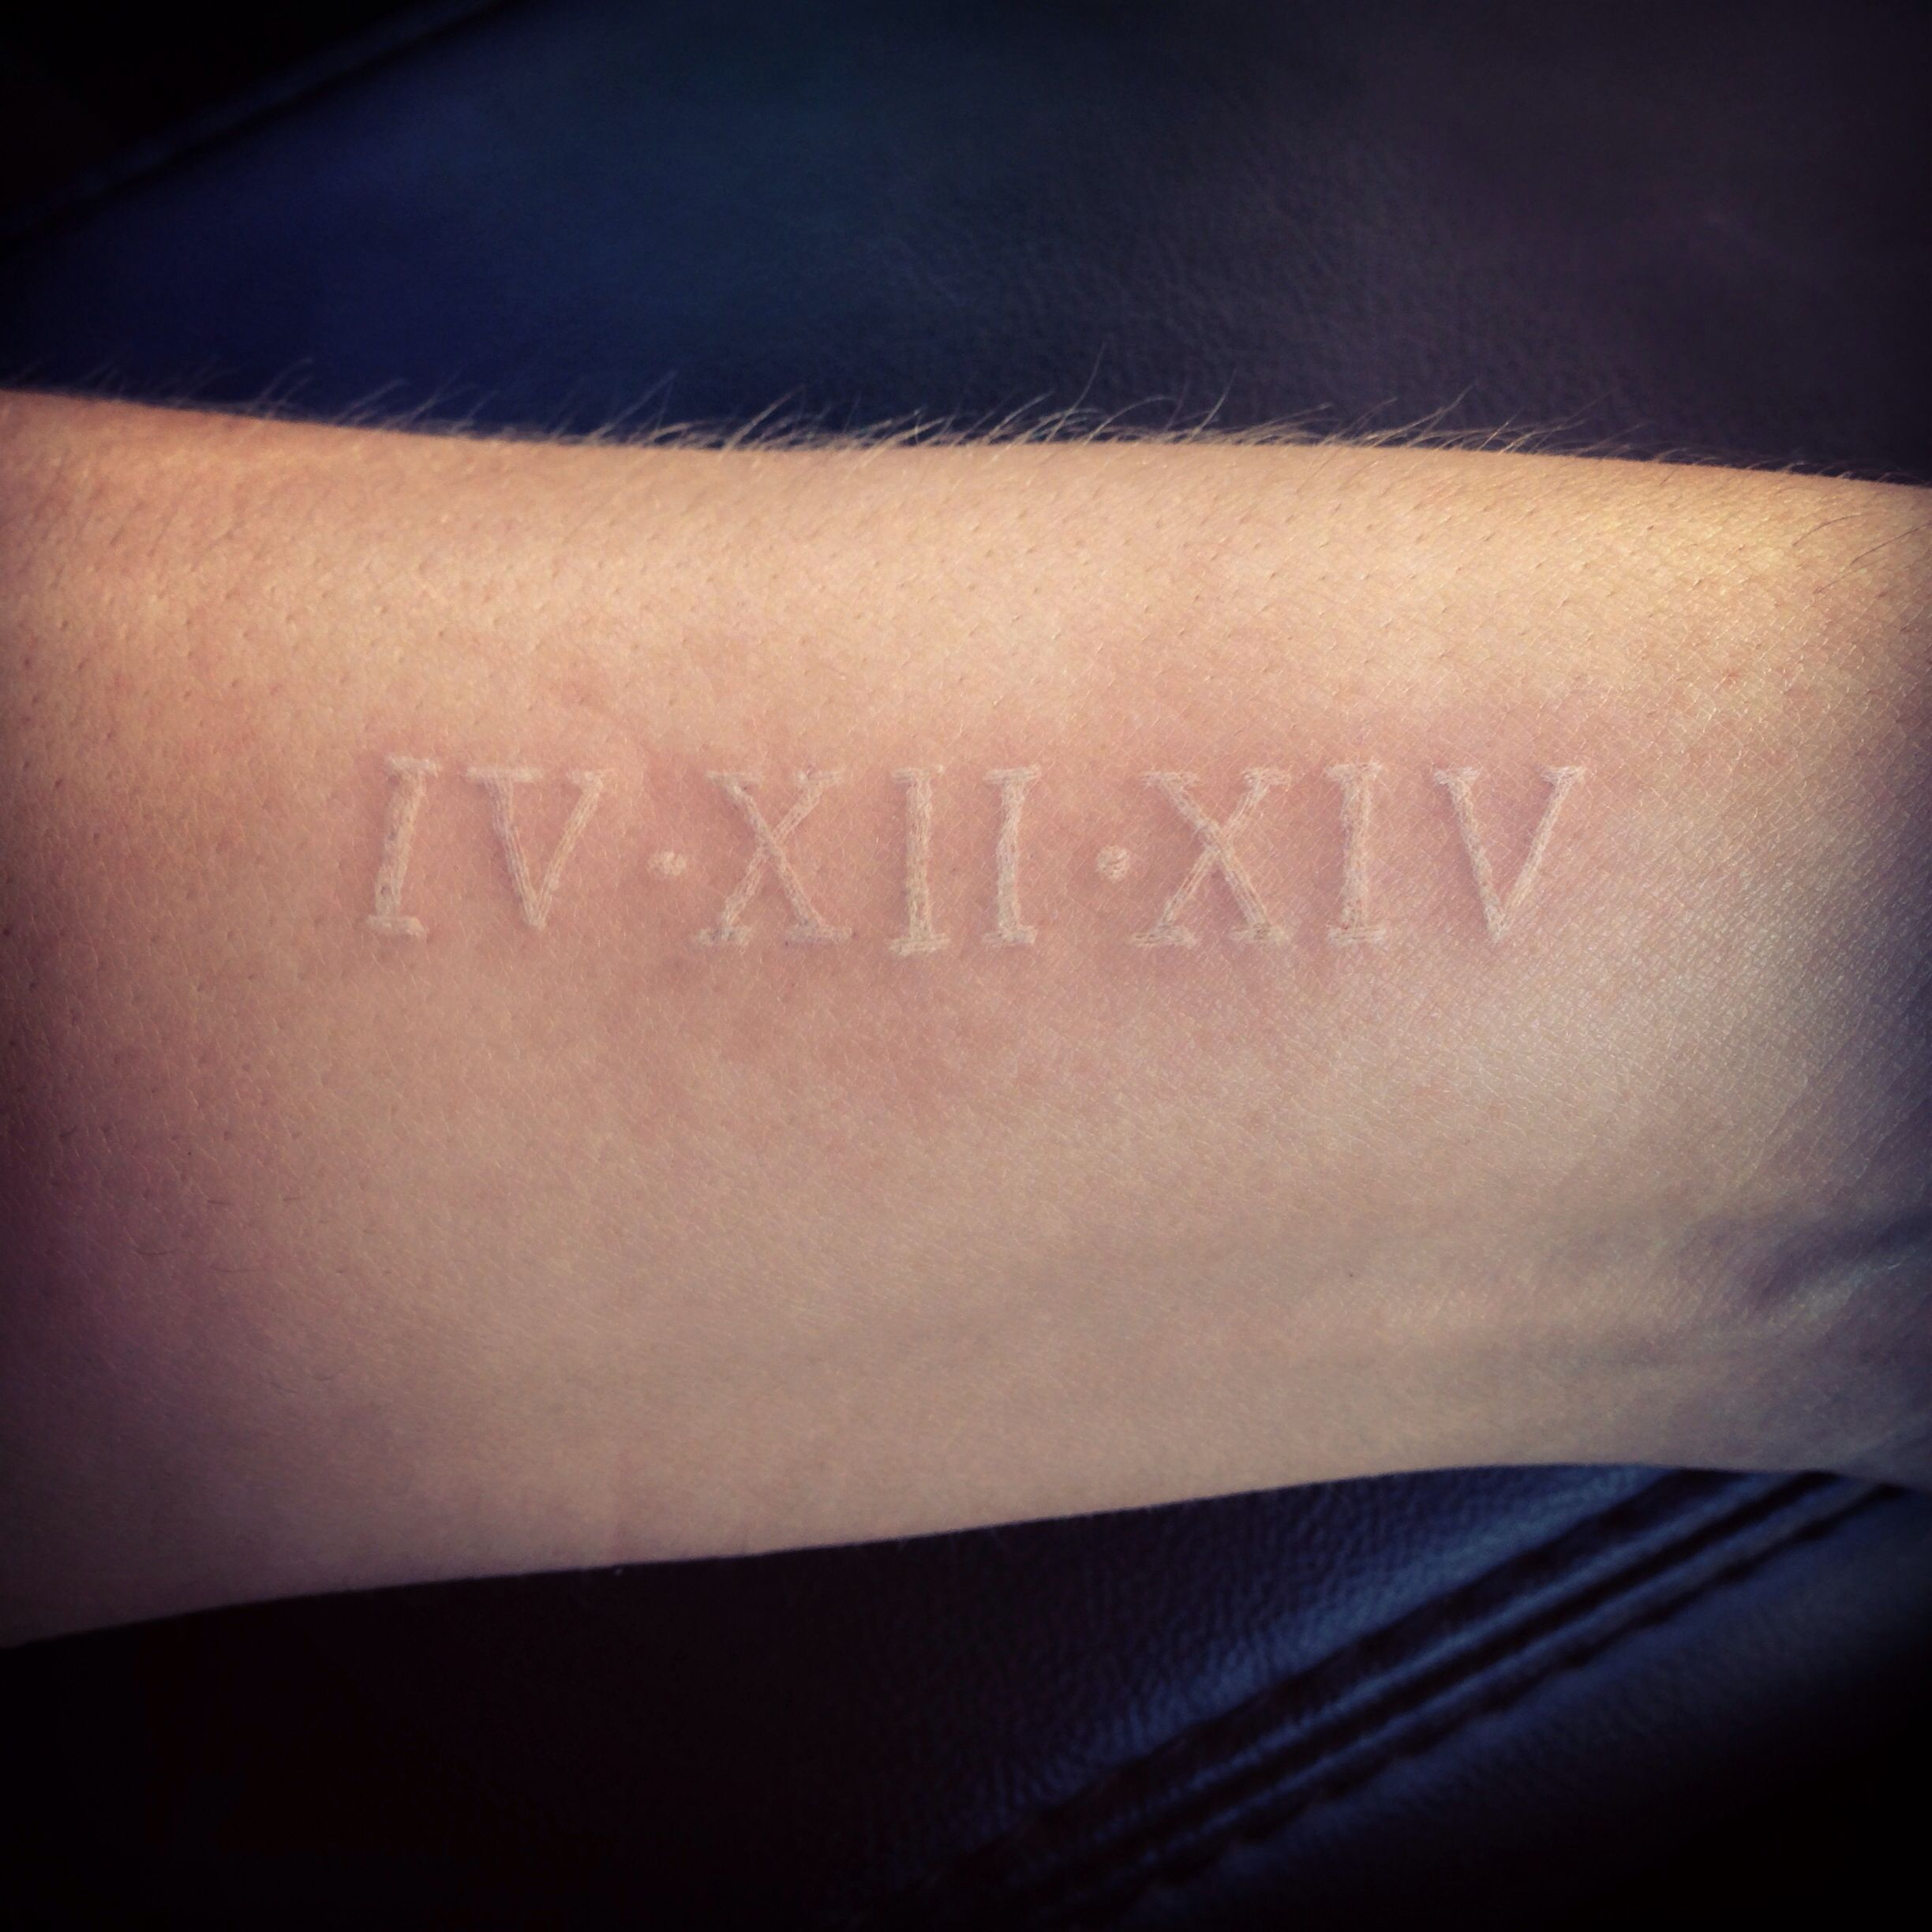 Roman numeral wedding date tattoo in white | Style, Me ...